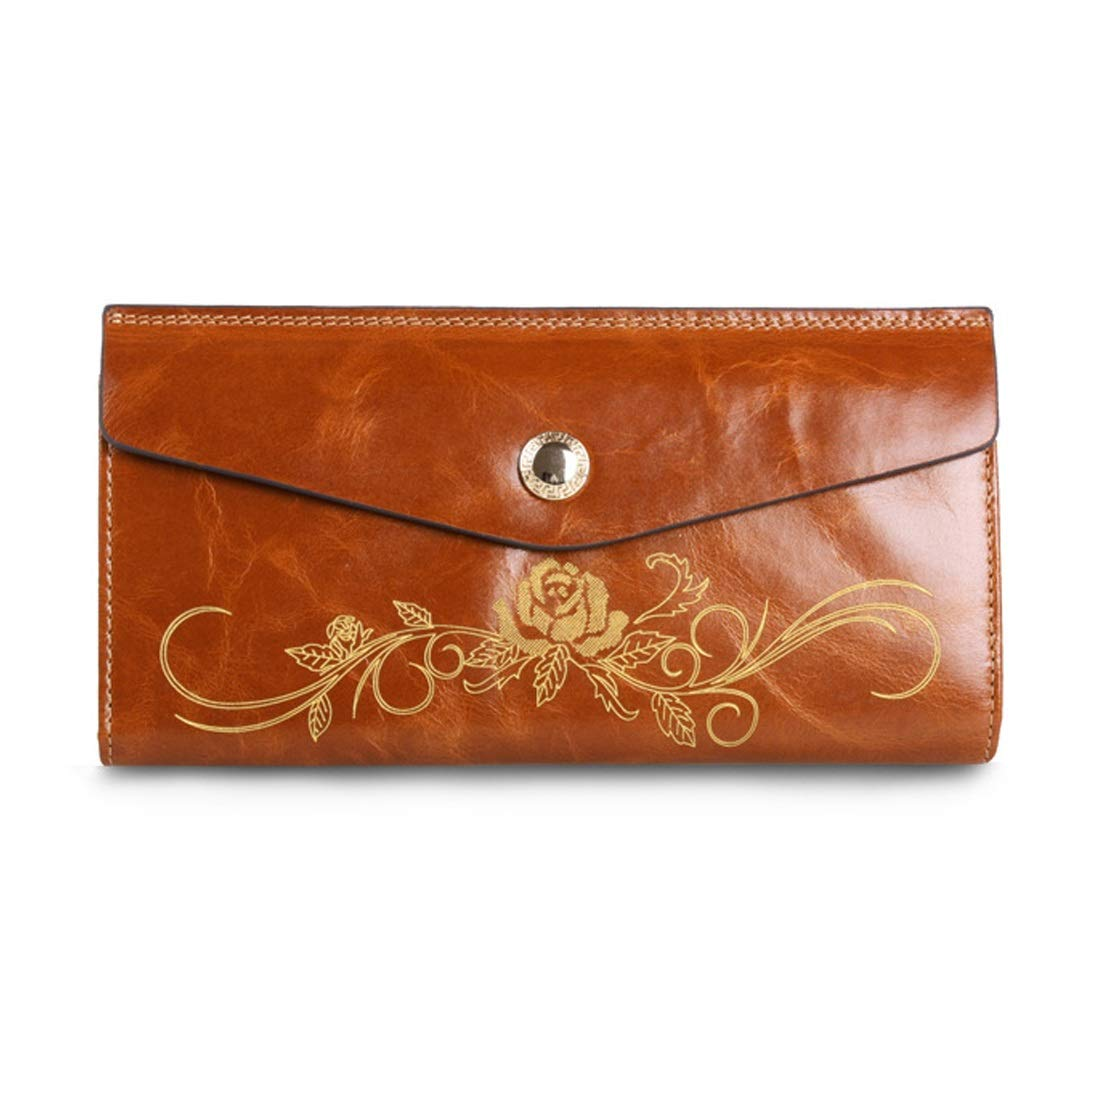 Professional Bag Long Wallet Coin Purse Men's Ladies fold Wallet Purse Women's Luxury Leather Real Leather. Outdoor Travel Essentials (color   Brass)